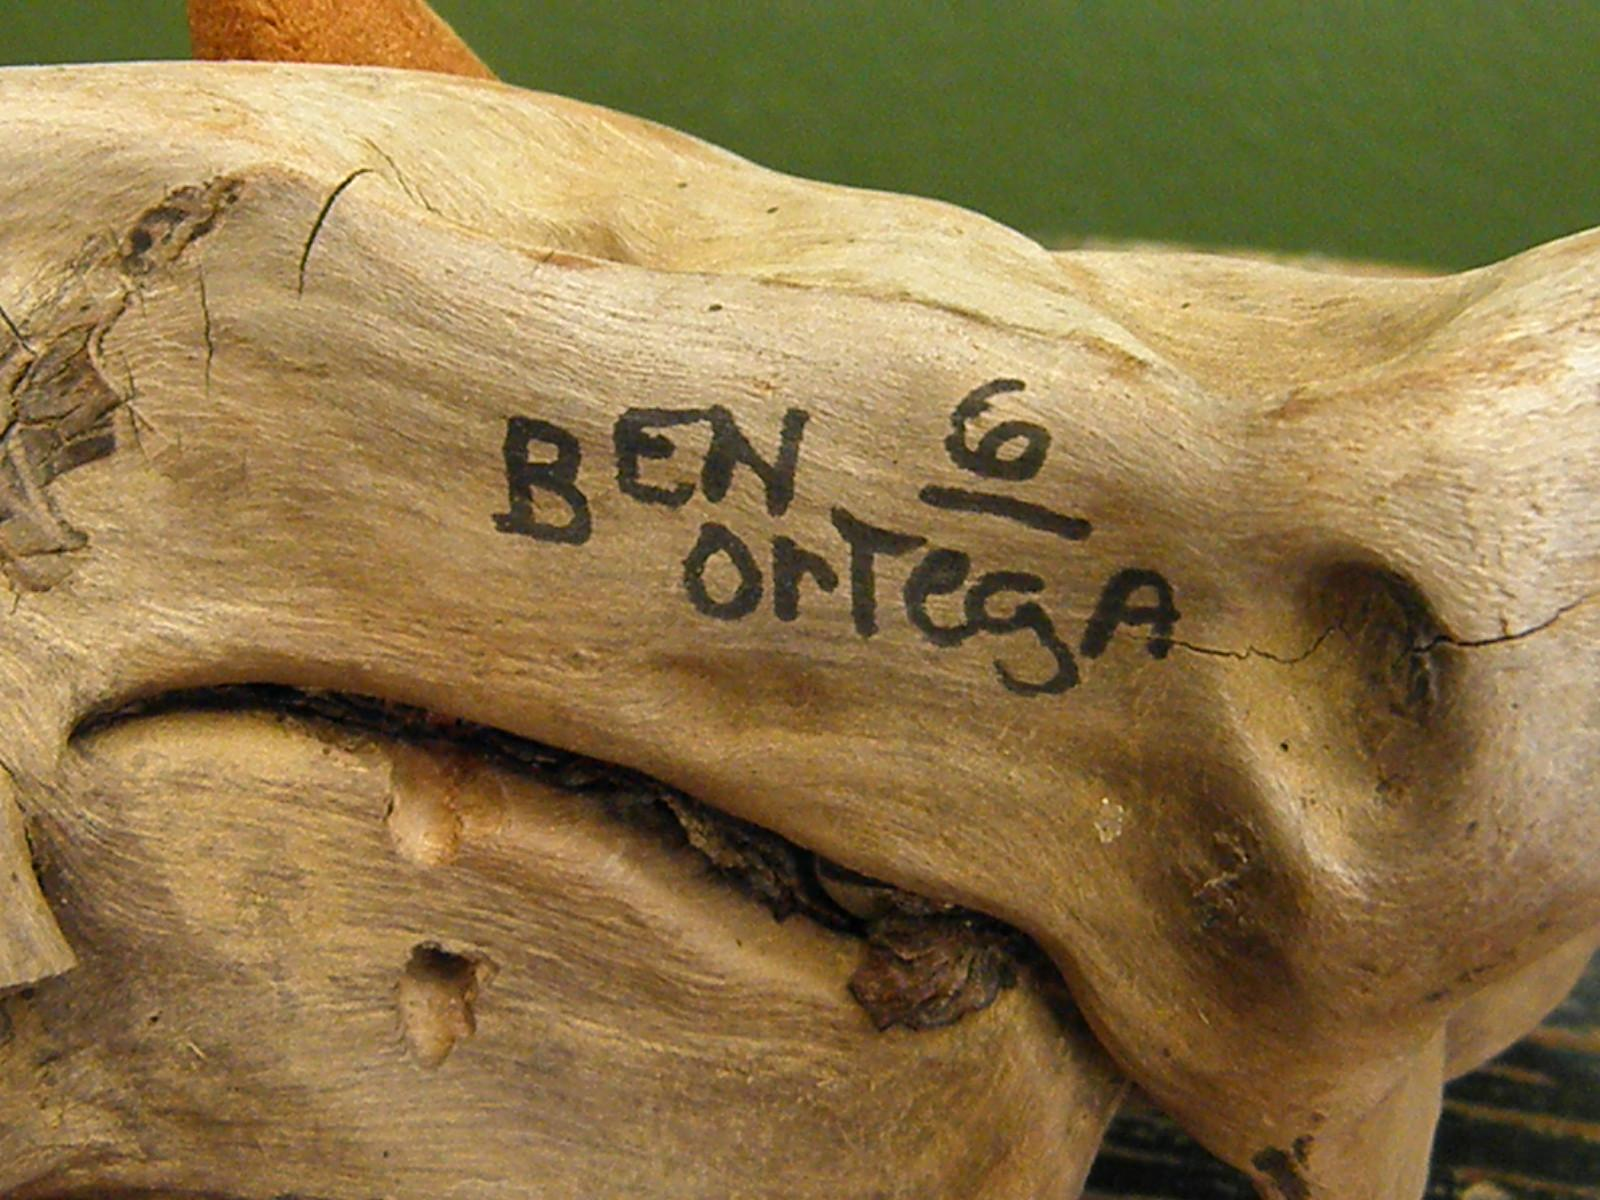 Signed Wood Carving By Artist Ben Ortega From